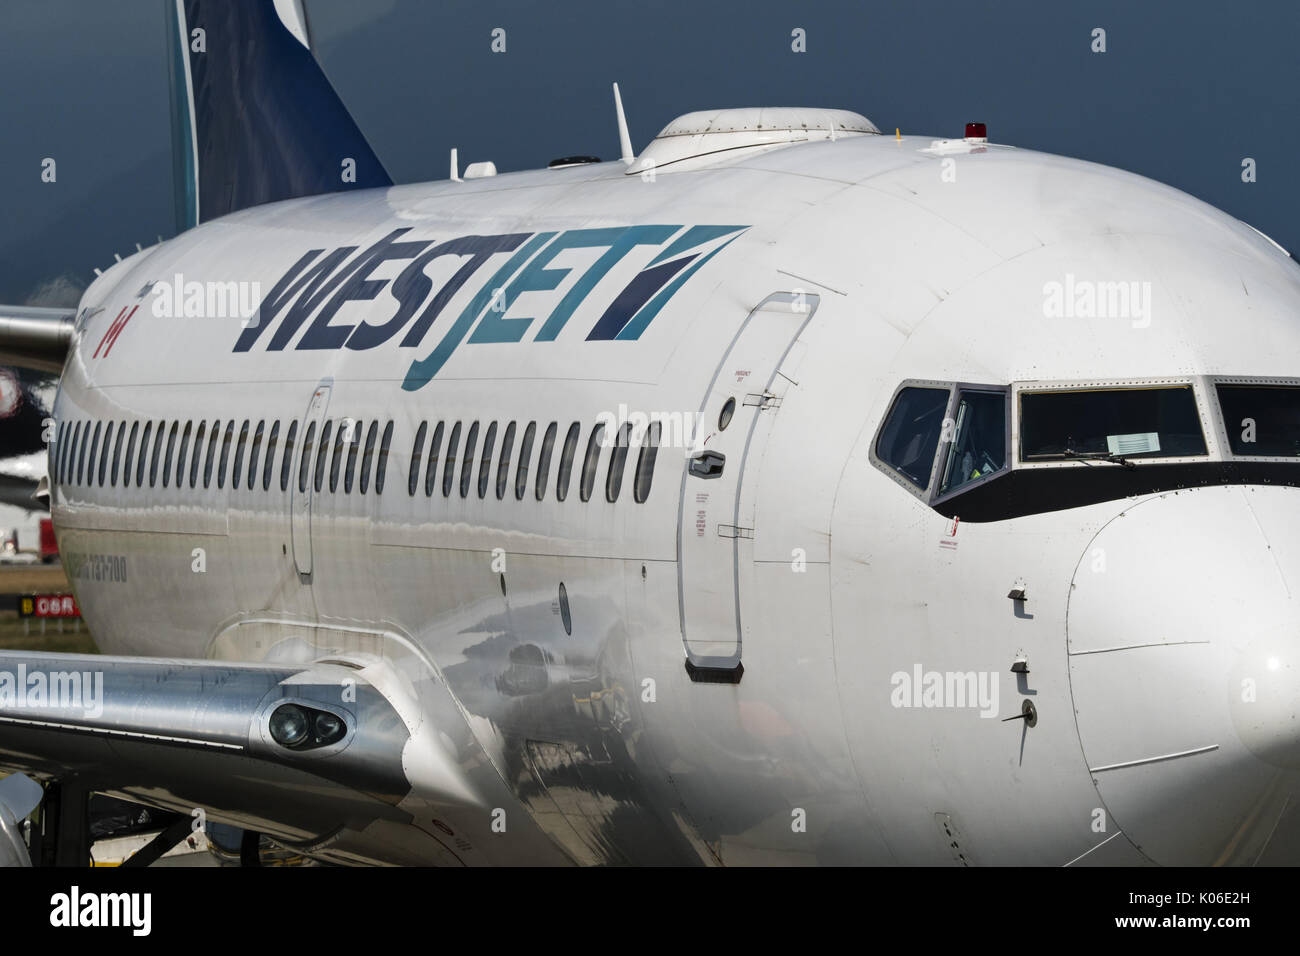 Richmond, British Columbia, Canada. 18th Aug, 2017. A WestJet Airlines Boeing 737-700 (C-GWSP) on the tarmac, South Stock Photo